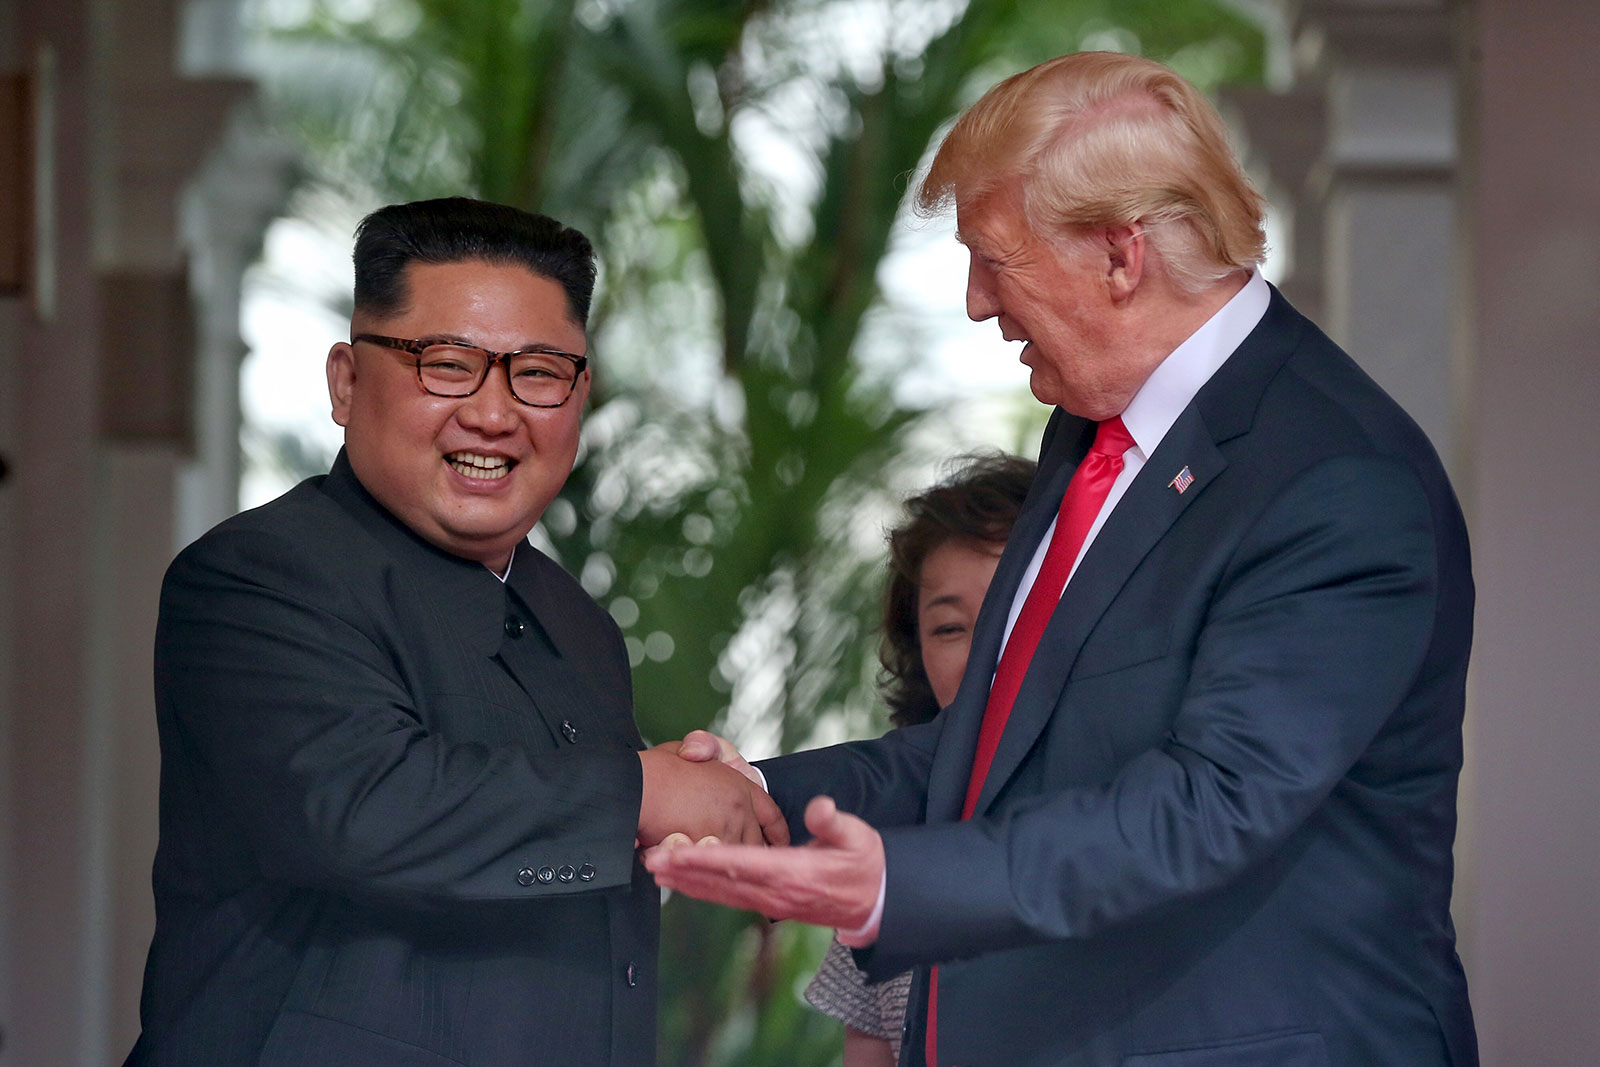 PICTURE SPECIAL: How Trump met Kim